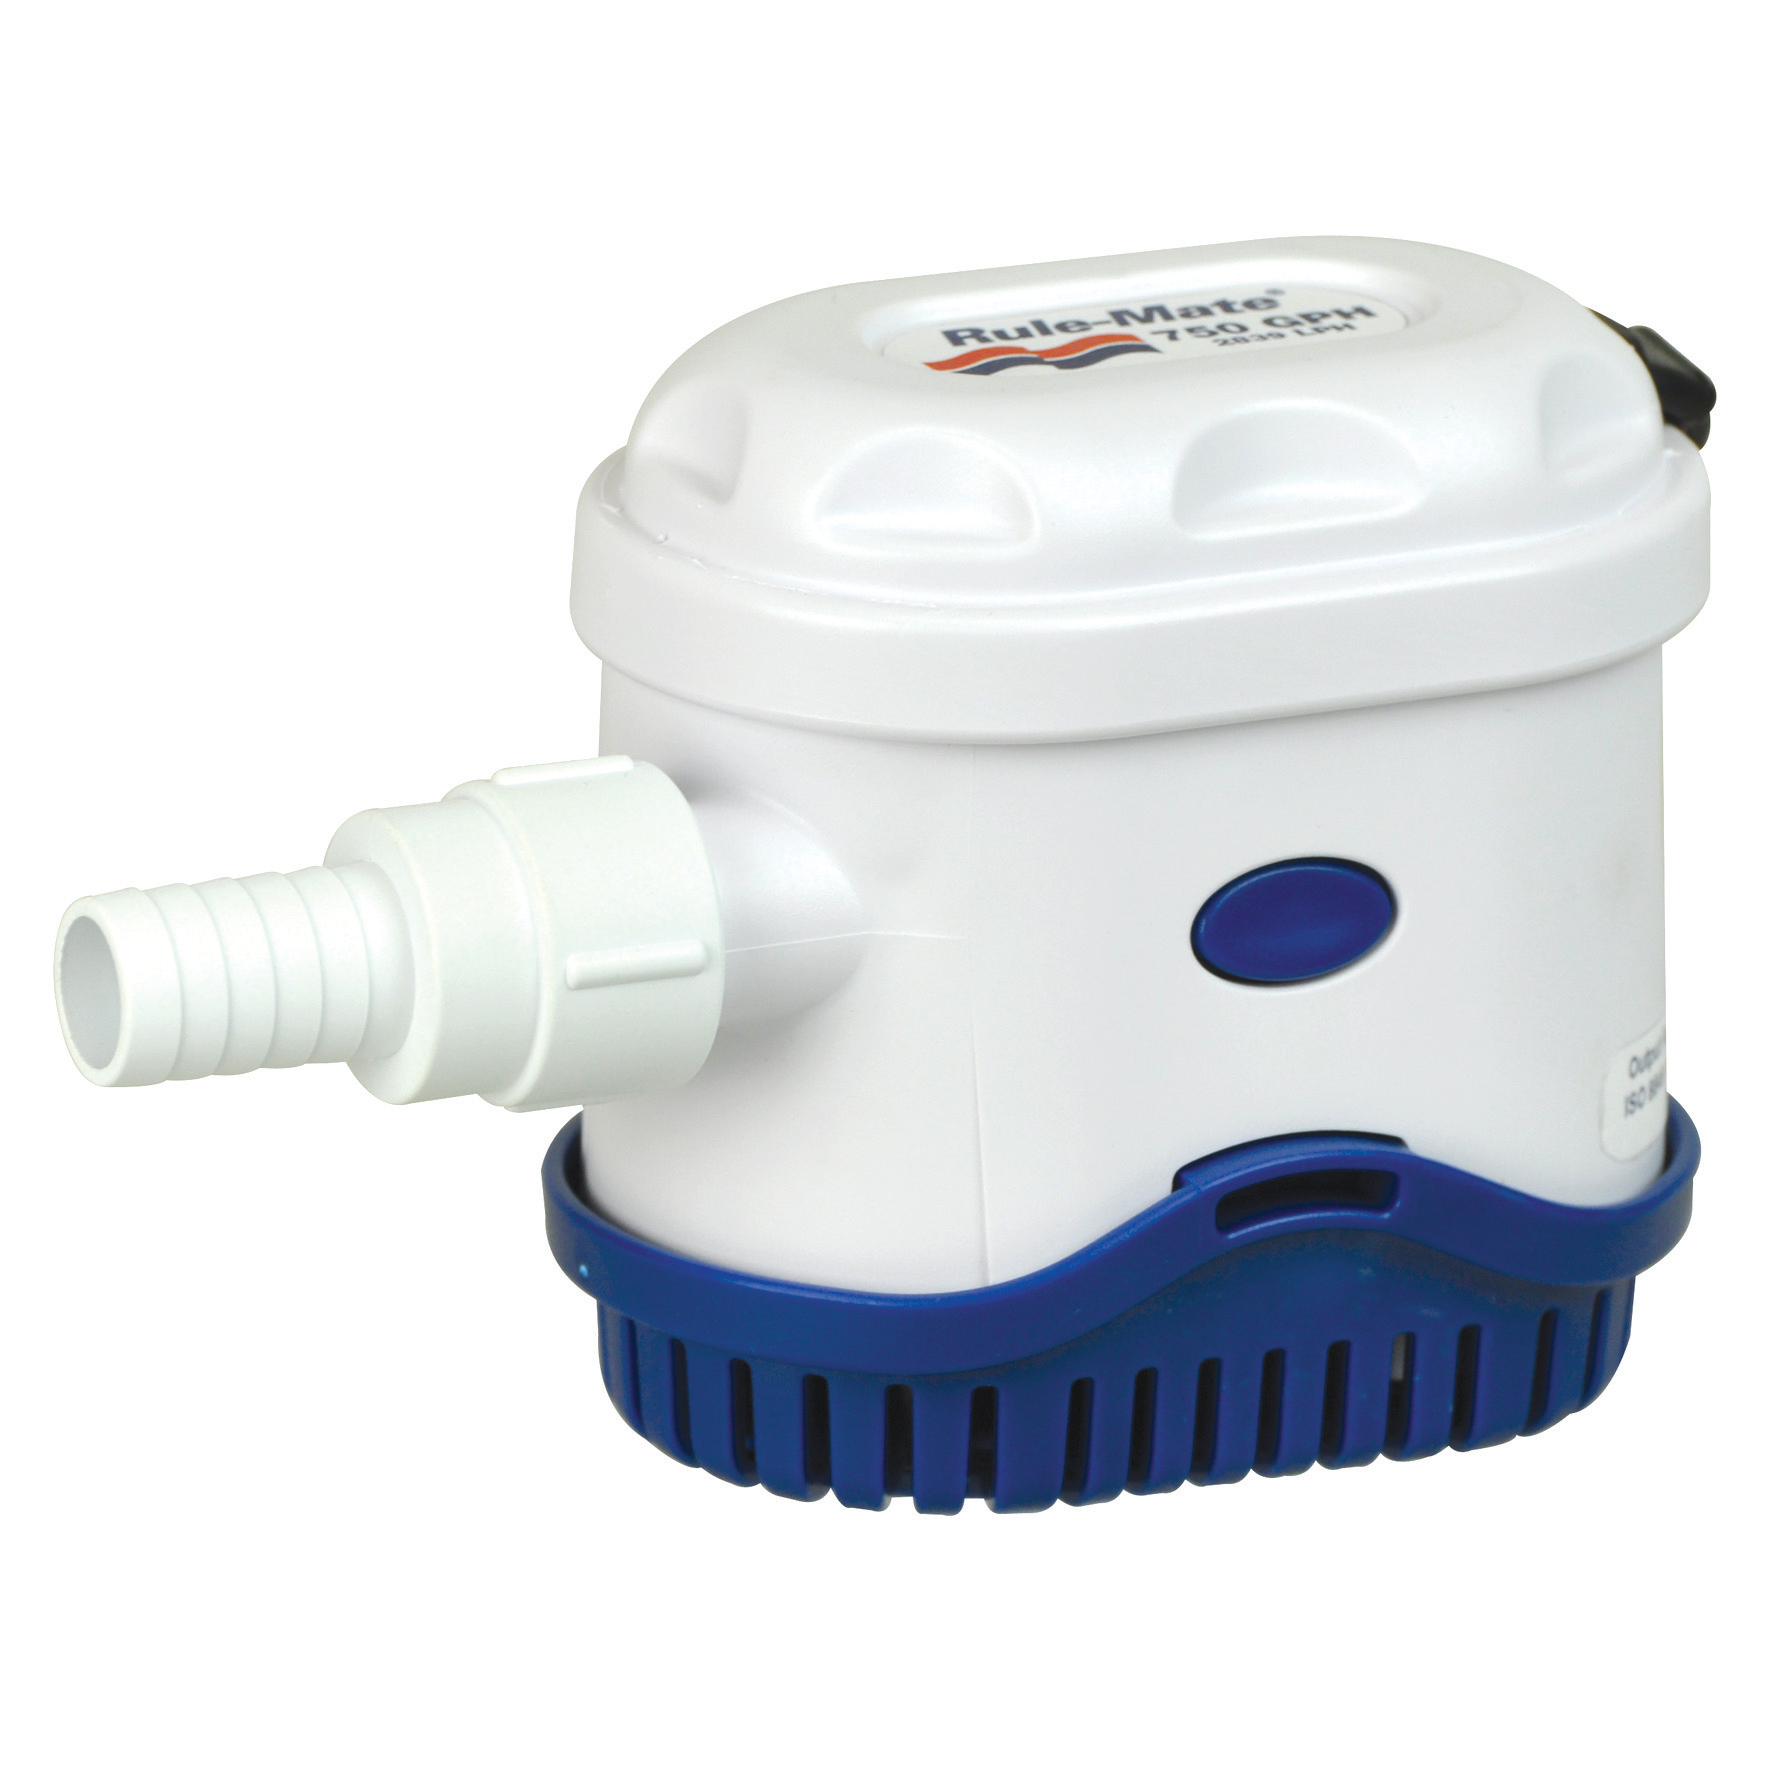 Rule-Mate Automatic Bilge Pump RM500 - 500 GPH photo